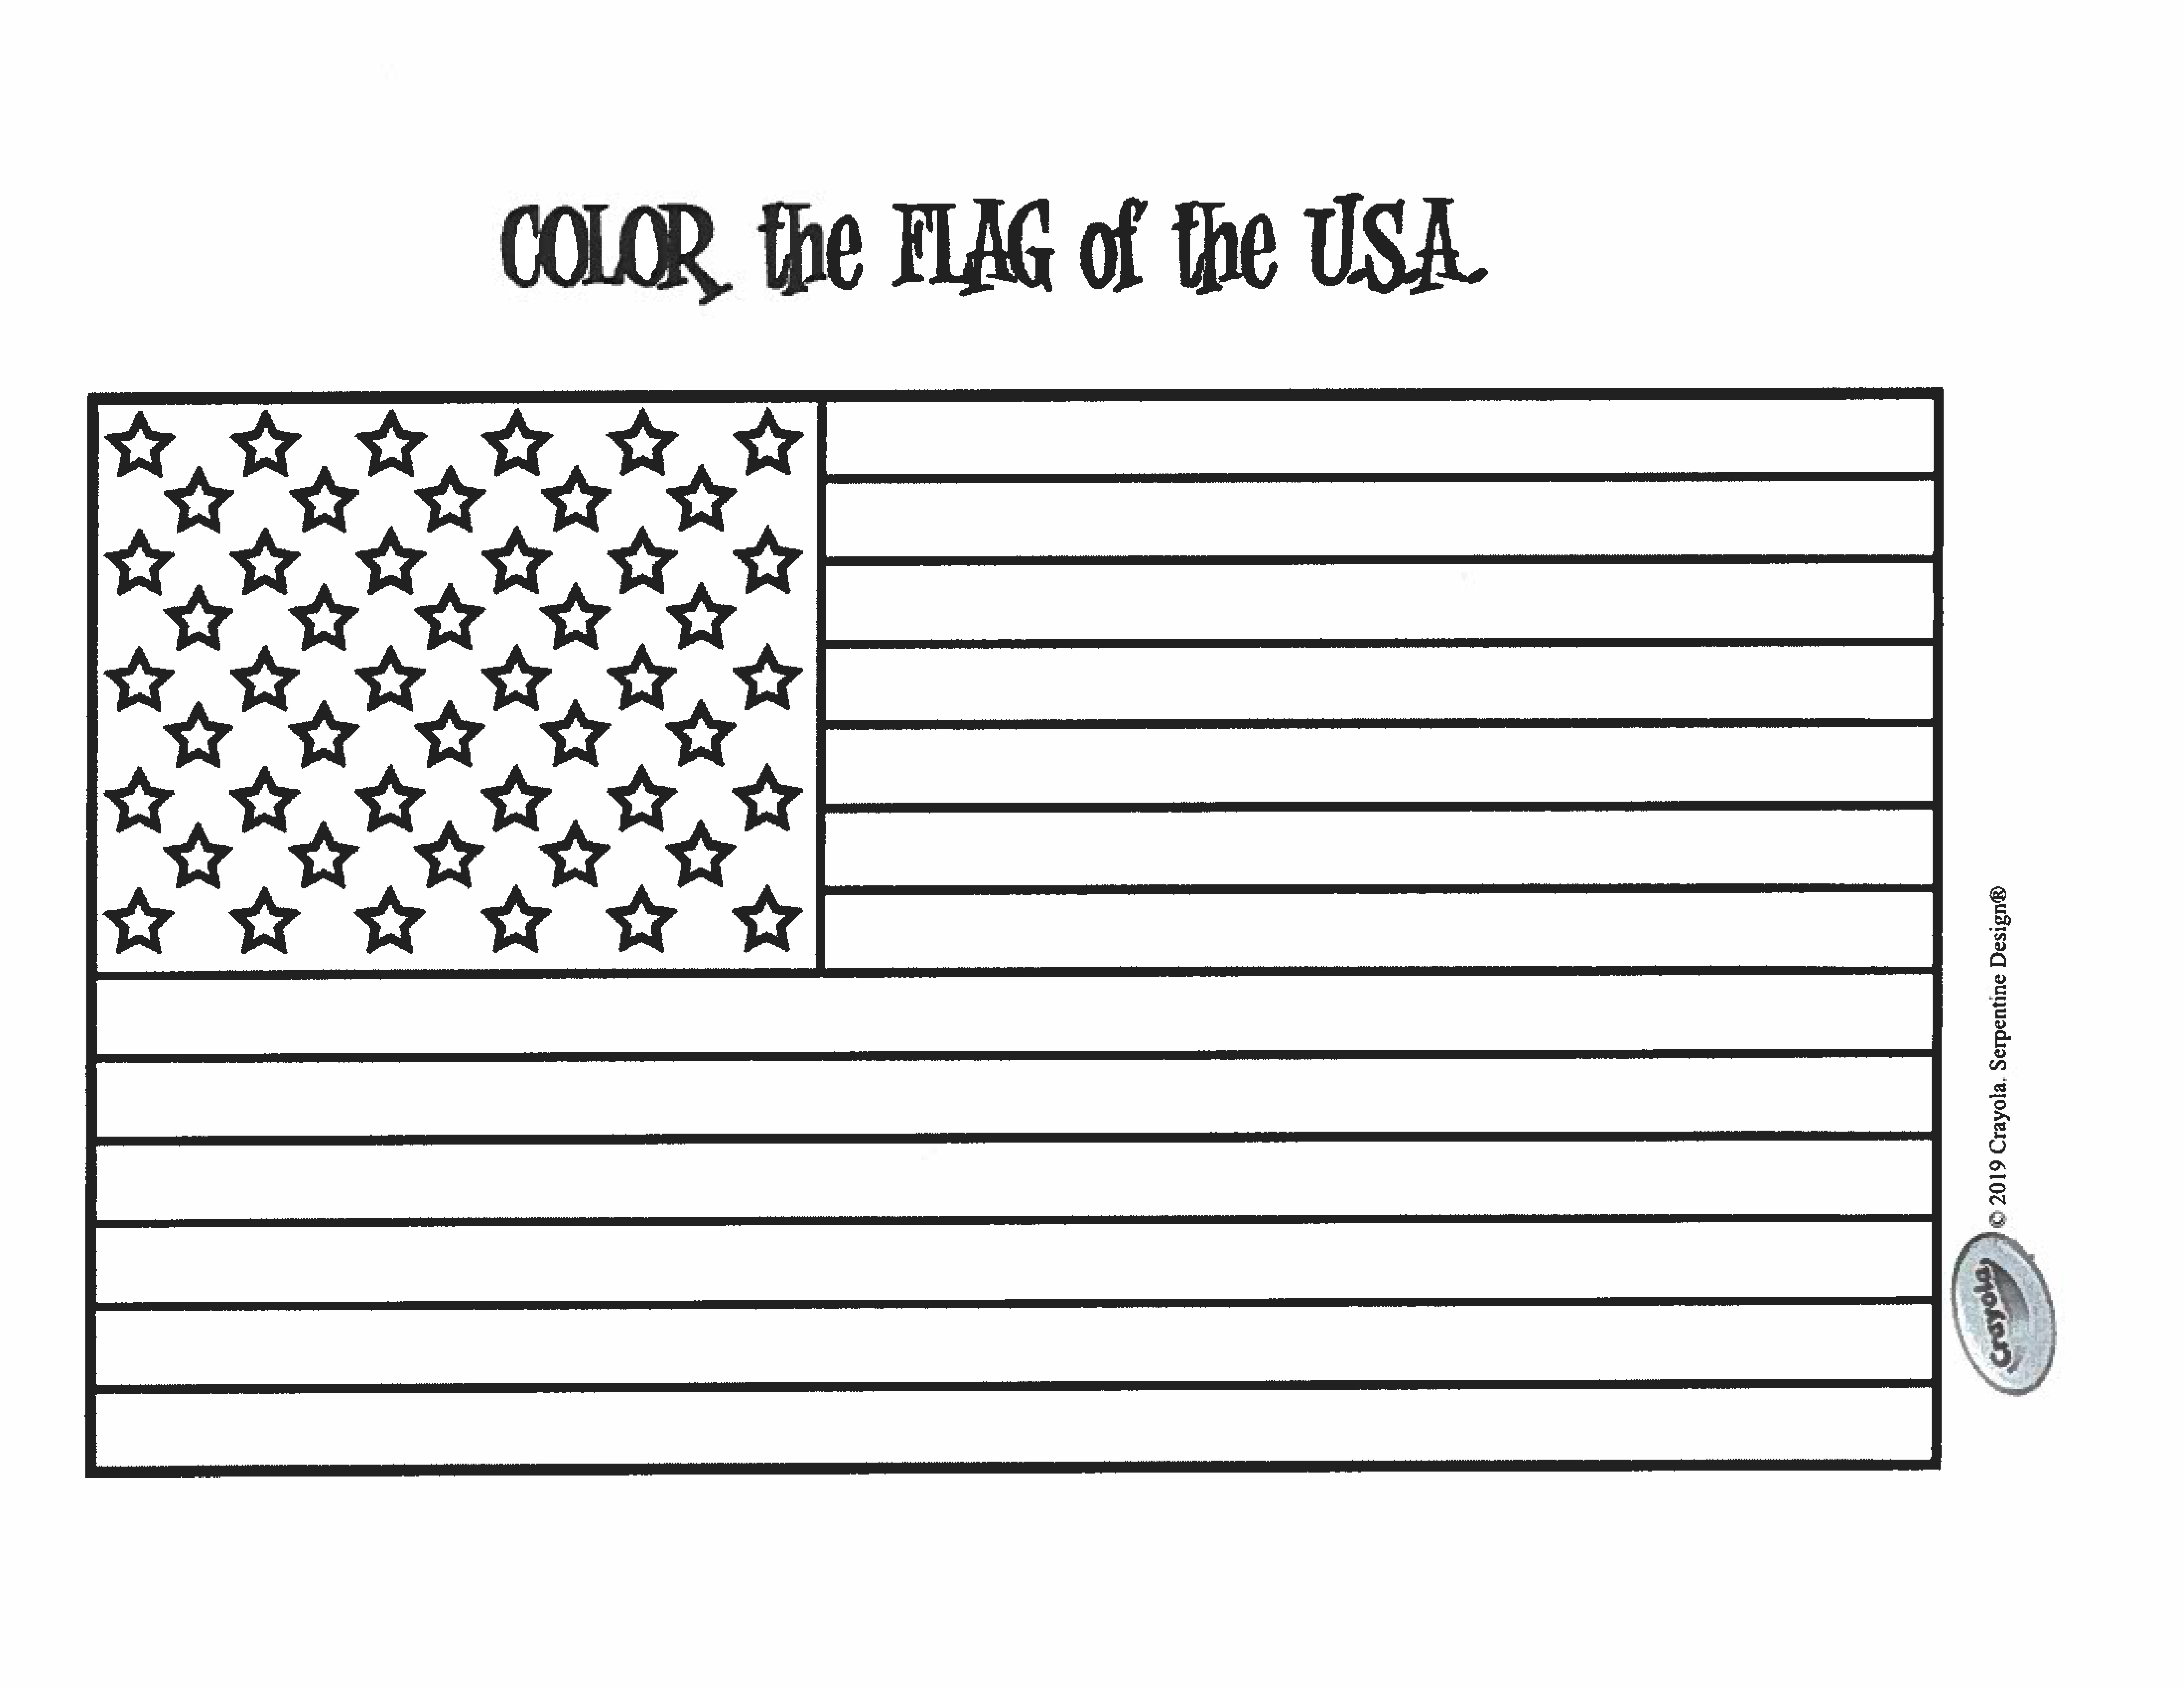 Color the flag 20200701190412